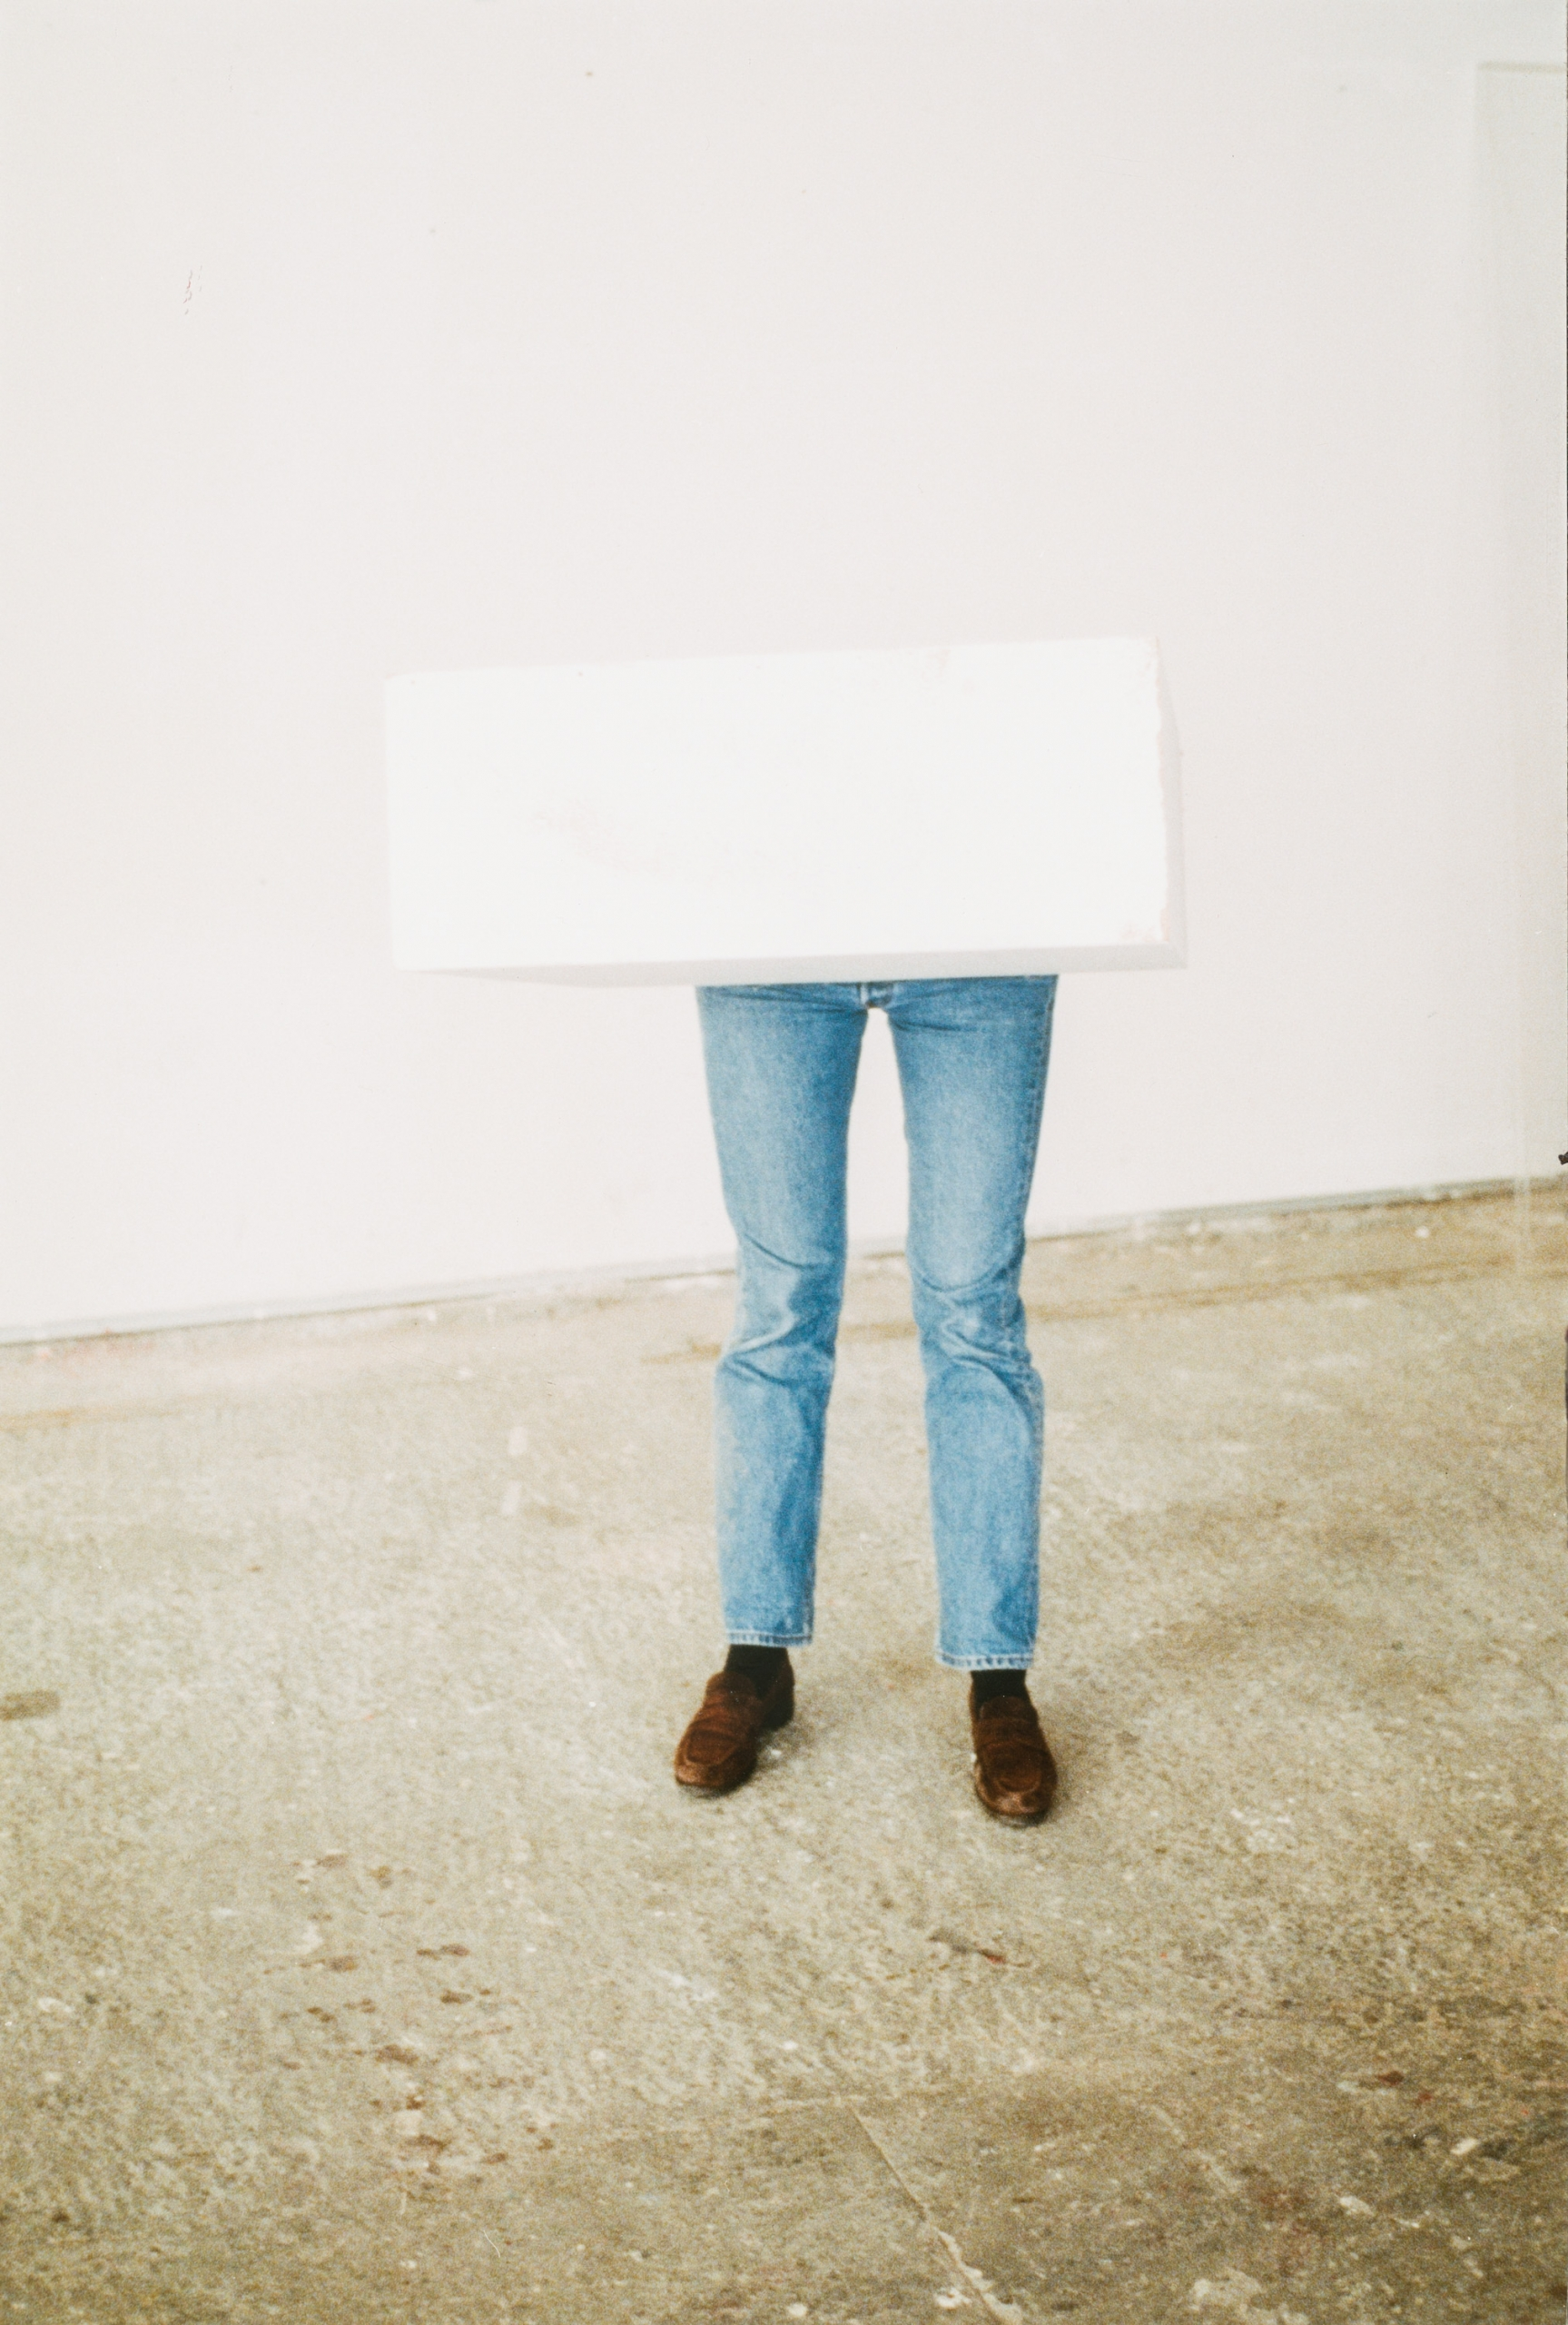 Erwin Wurm, Ohne Titel (aus der Serie One minute sculptures) / untitled (from the series One minute sculptures)